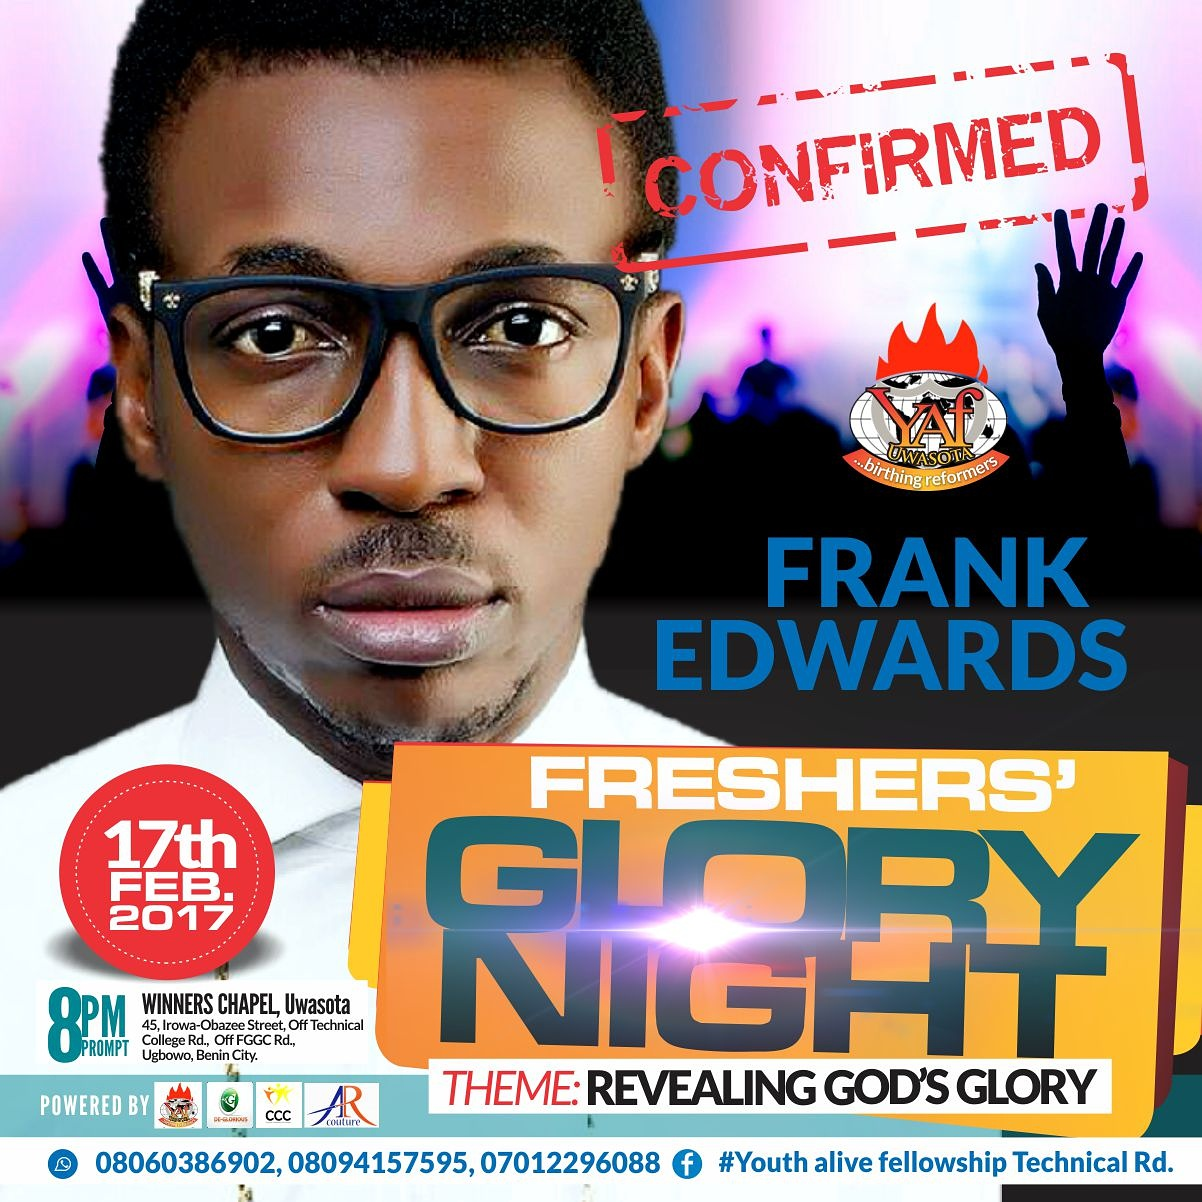 fgn%201 Event: Freshers' Glory Night with Frank Edwards, Ola Samuel and More